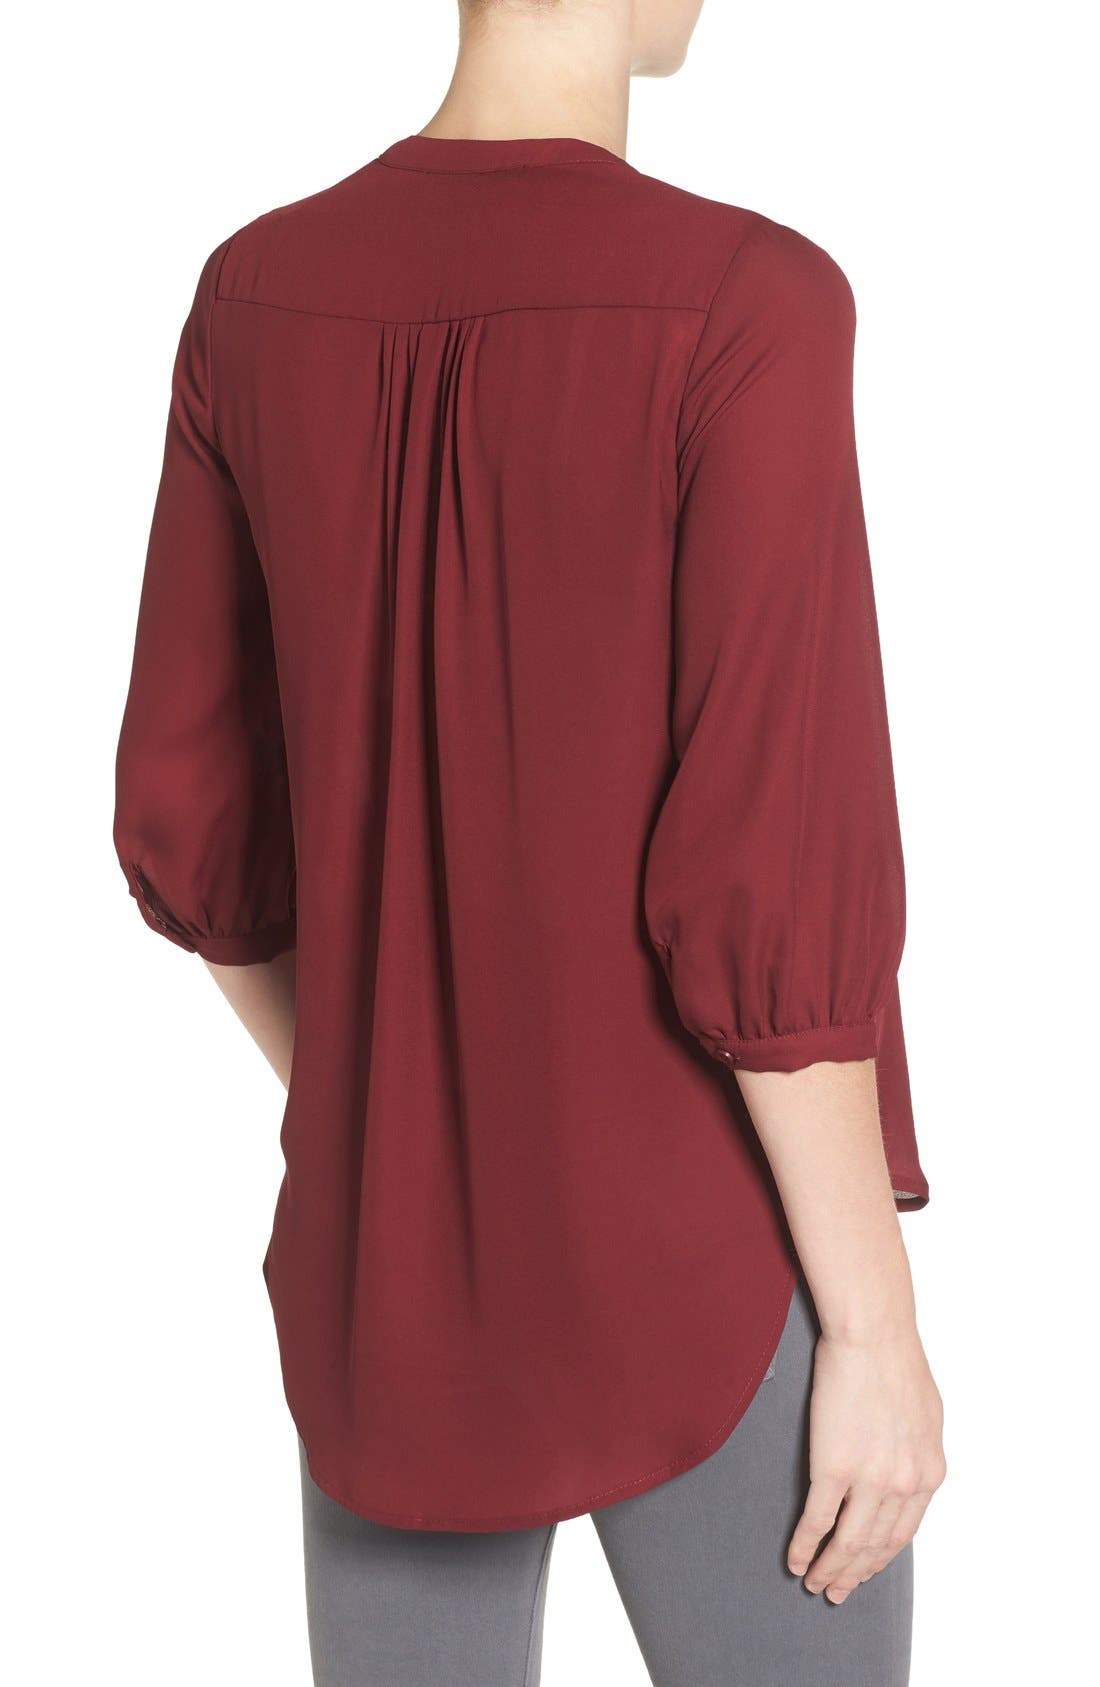 'Audrey' Maternity/Nursing Tuxedo Blouse,                             Alternate thumbnail 2, color,                             Burgundy